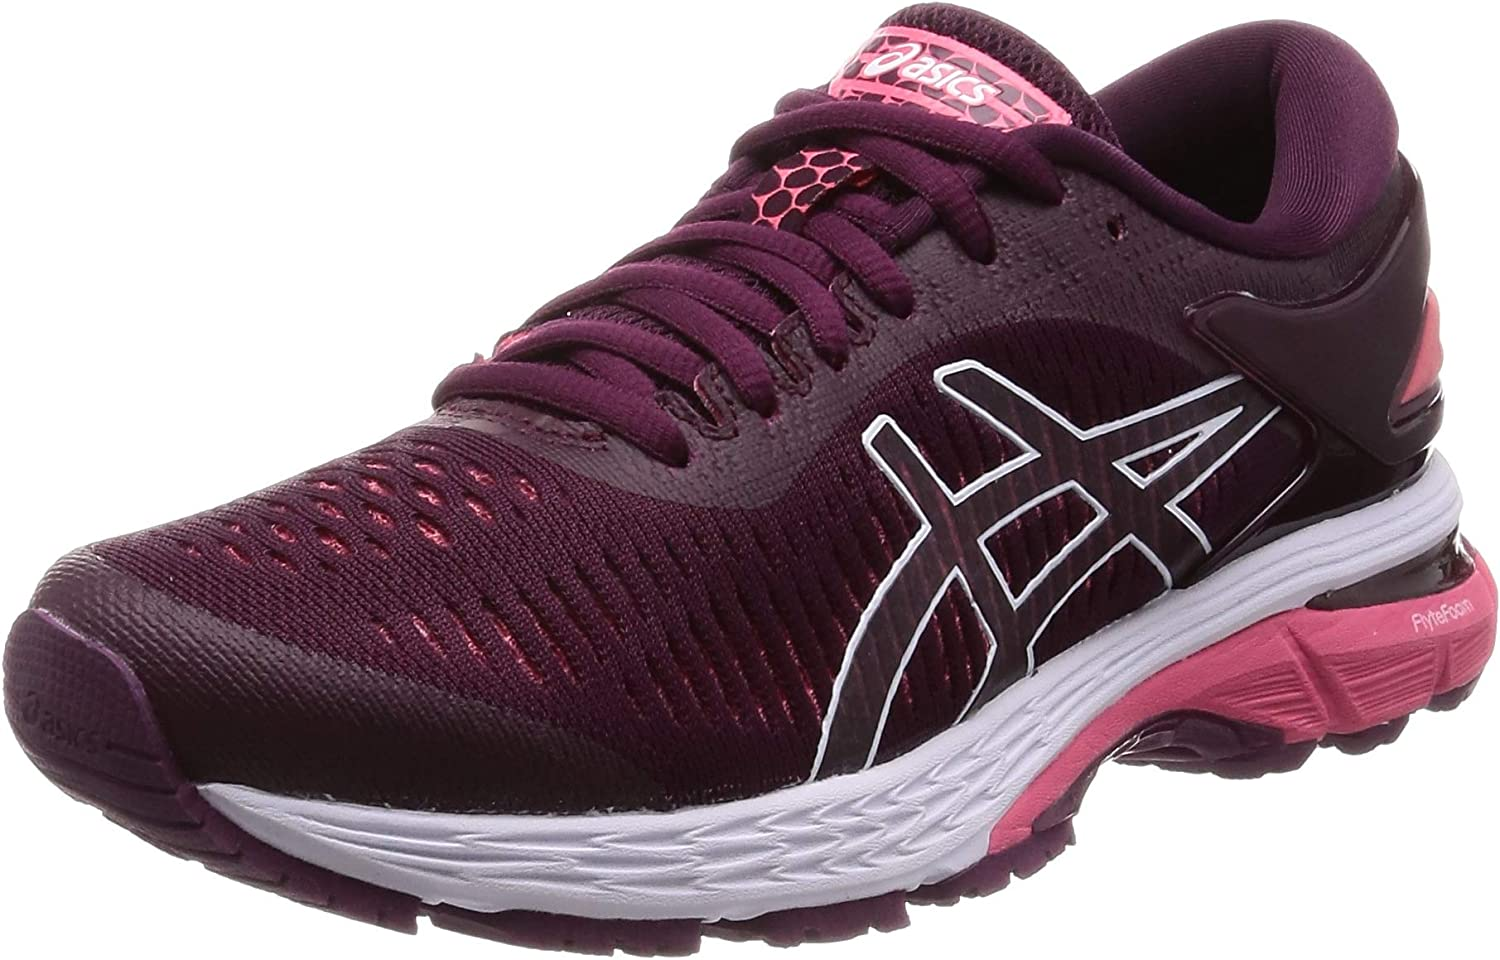 ASICS Womens Gel Kayano 25 Cushioned Breathable Running Shoes